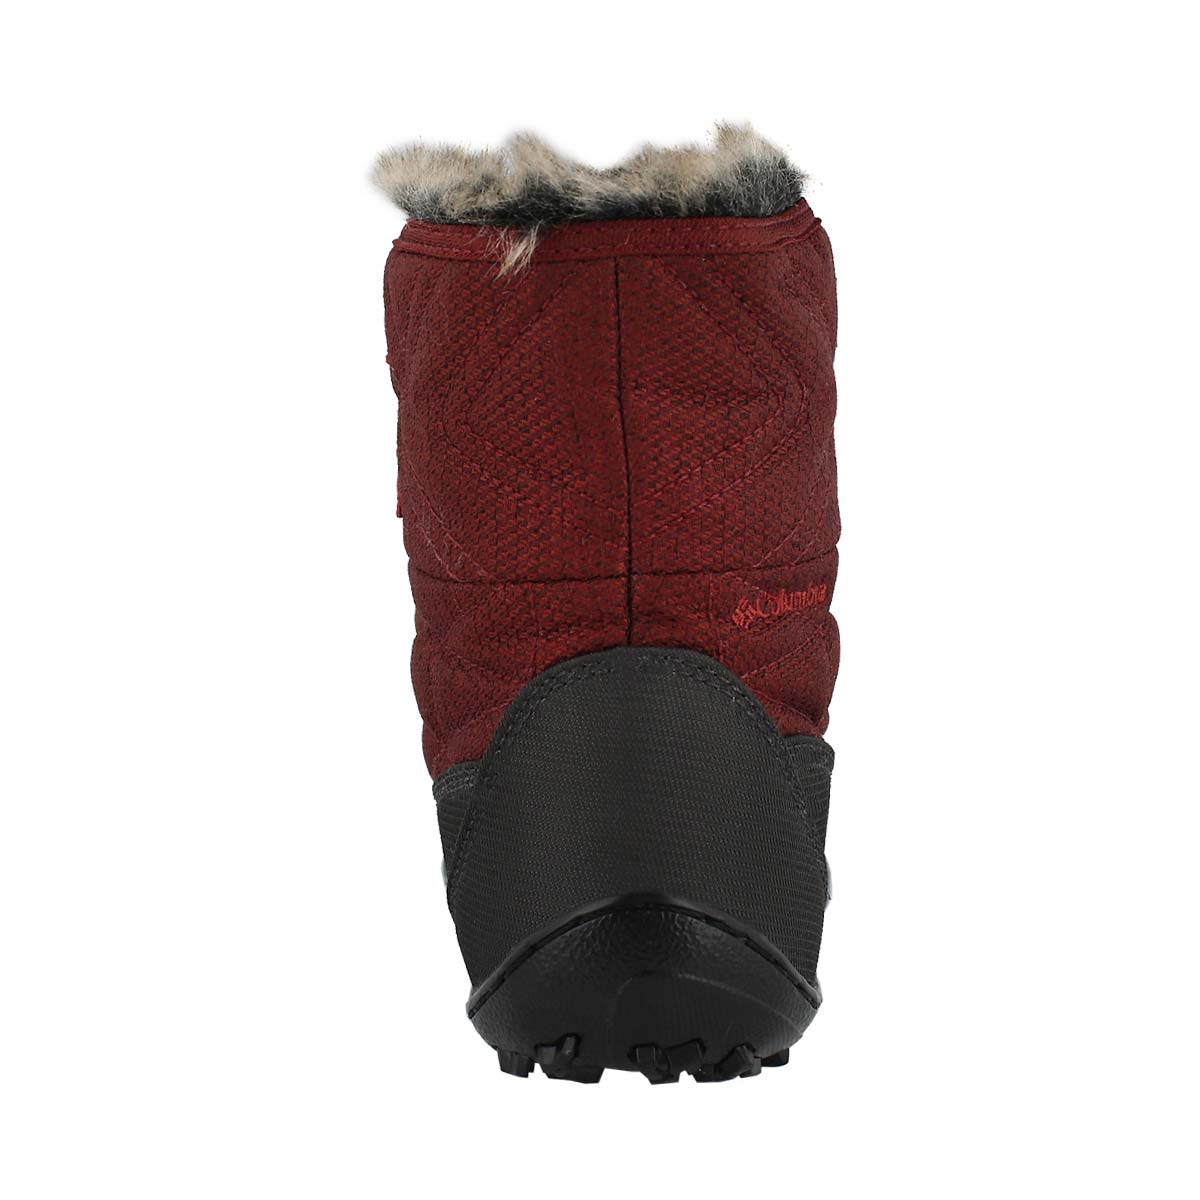 Lds Minx Shorty III dprst wtpf wntr boot